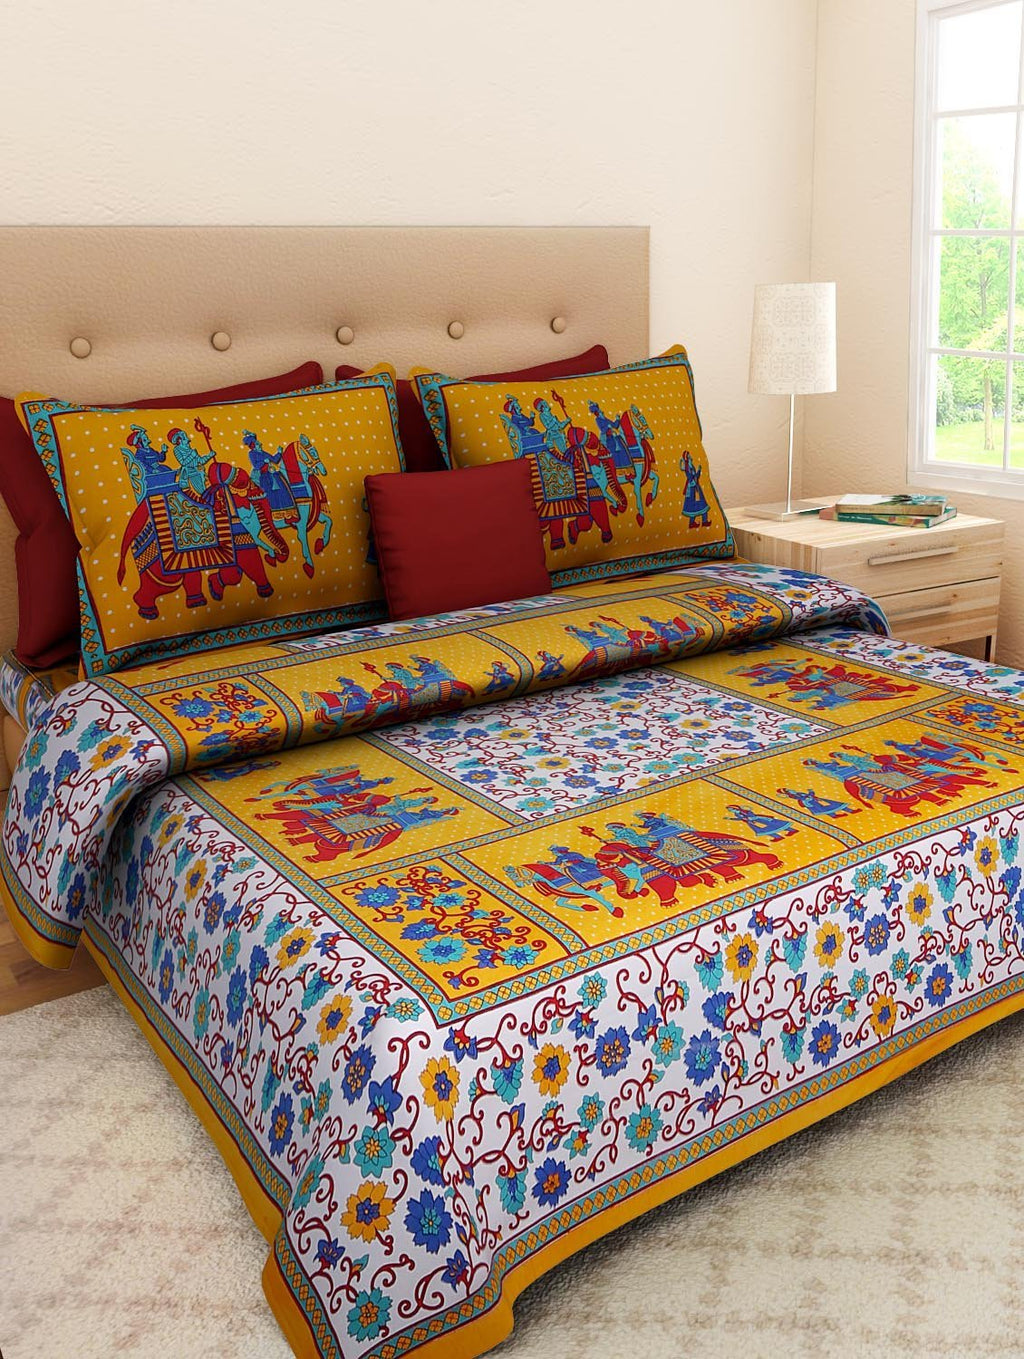 Cotton Printed King Size Double Bedsheets with 2 Pillow Covers